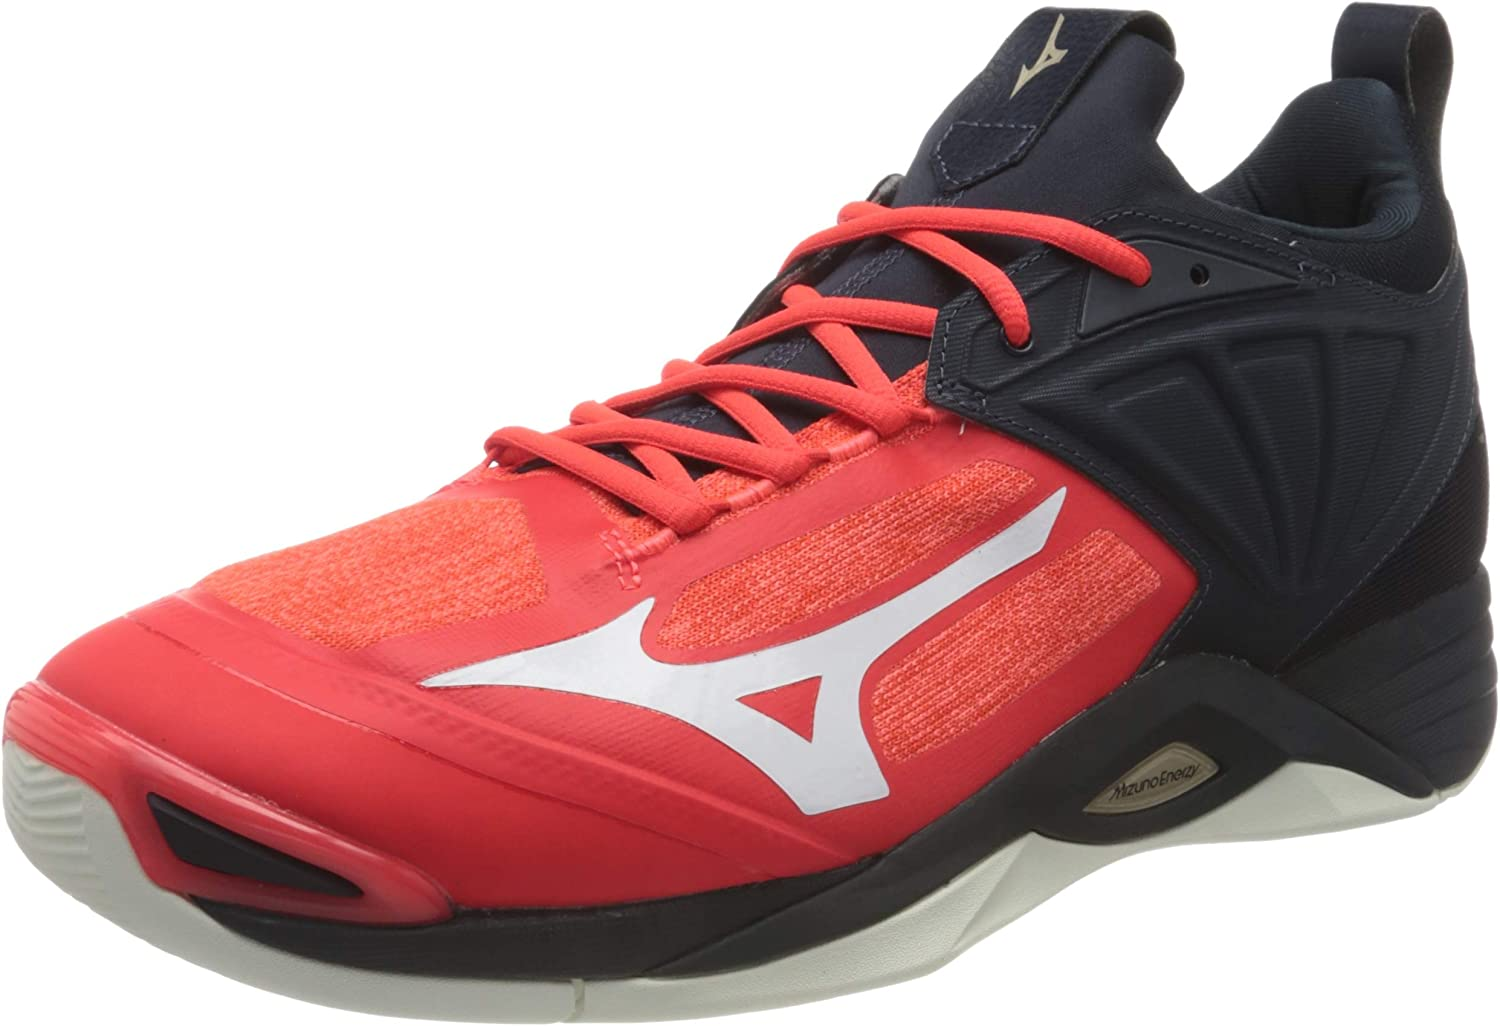 Mizuno Men's Running Volleyball Salute Shoe Ignitionred White Same day Our shop most popular shipping